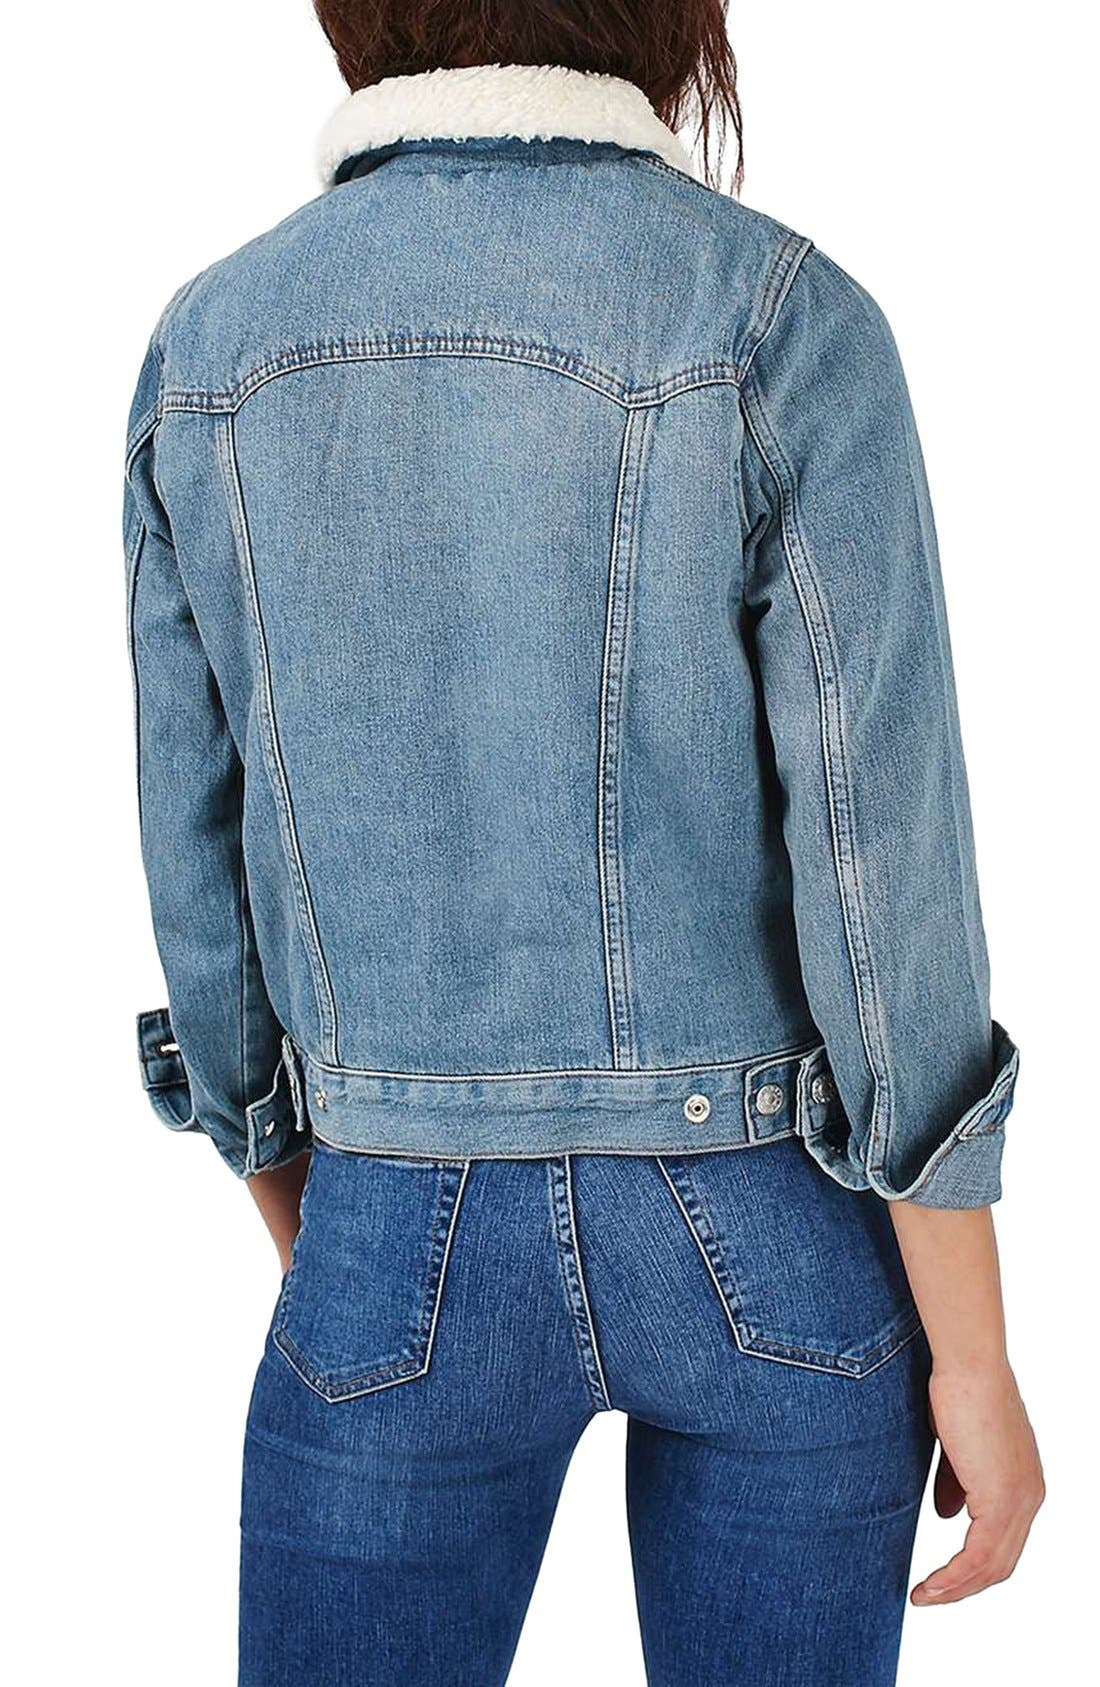 Alternate Image 3  - Topshop Denim Jacket with Faux Shearling Lining